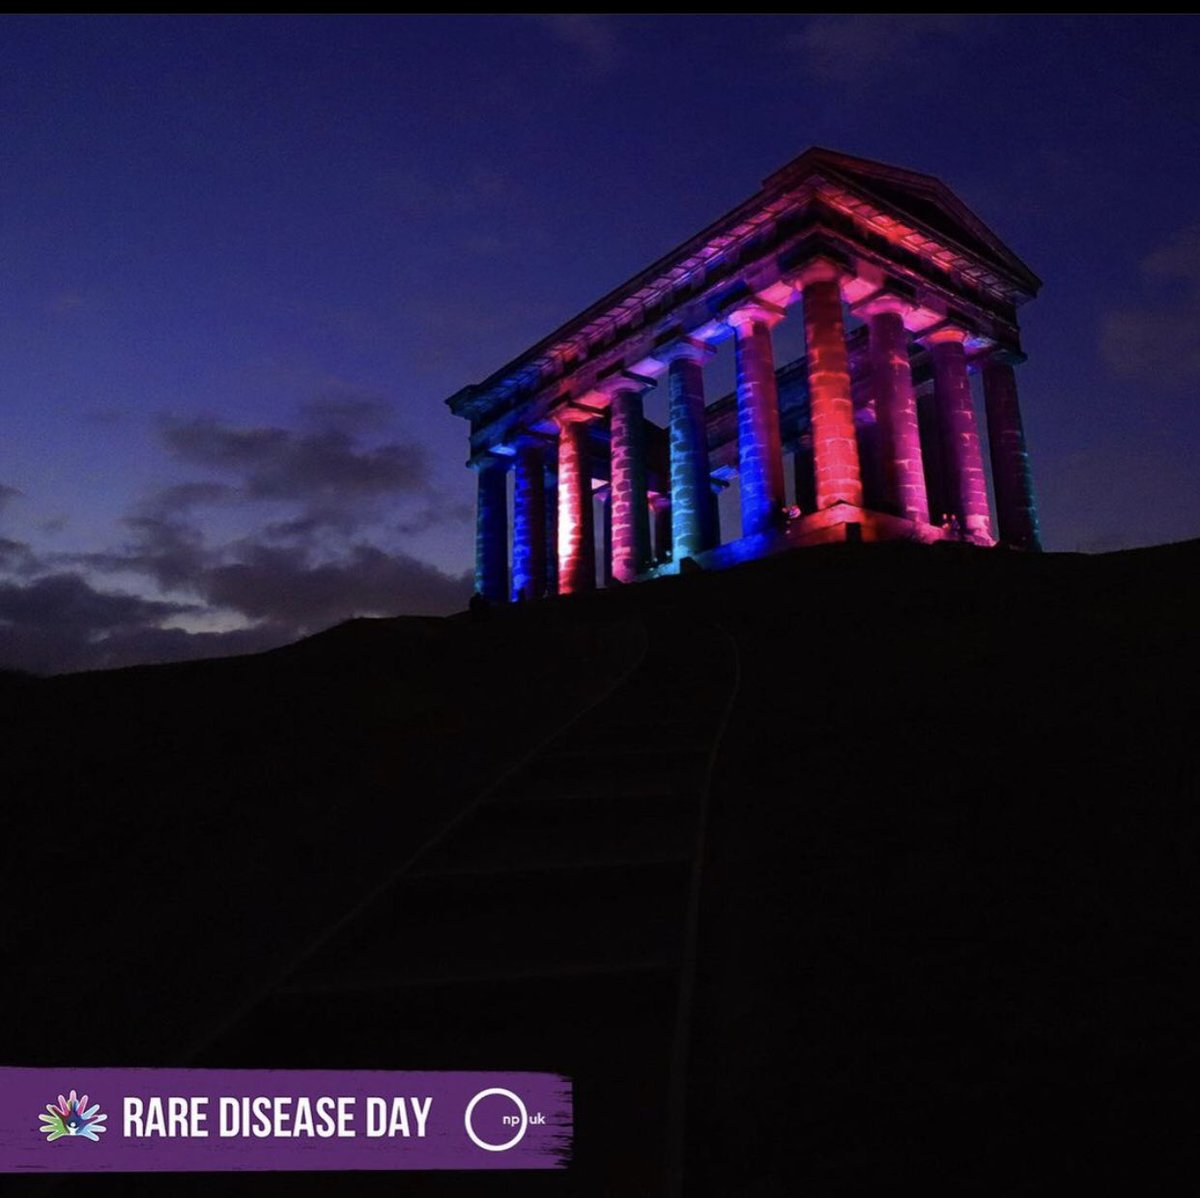 Thank you @SunderlandUK for showing your support for the many families impacted by a rare disease. We are rare, we are #Many #Strong #Proud #RareDiseases #niemannpick #npc #ASMD #RareDiseaseDay2021